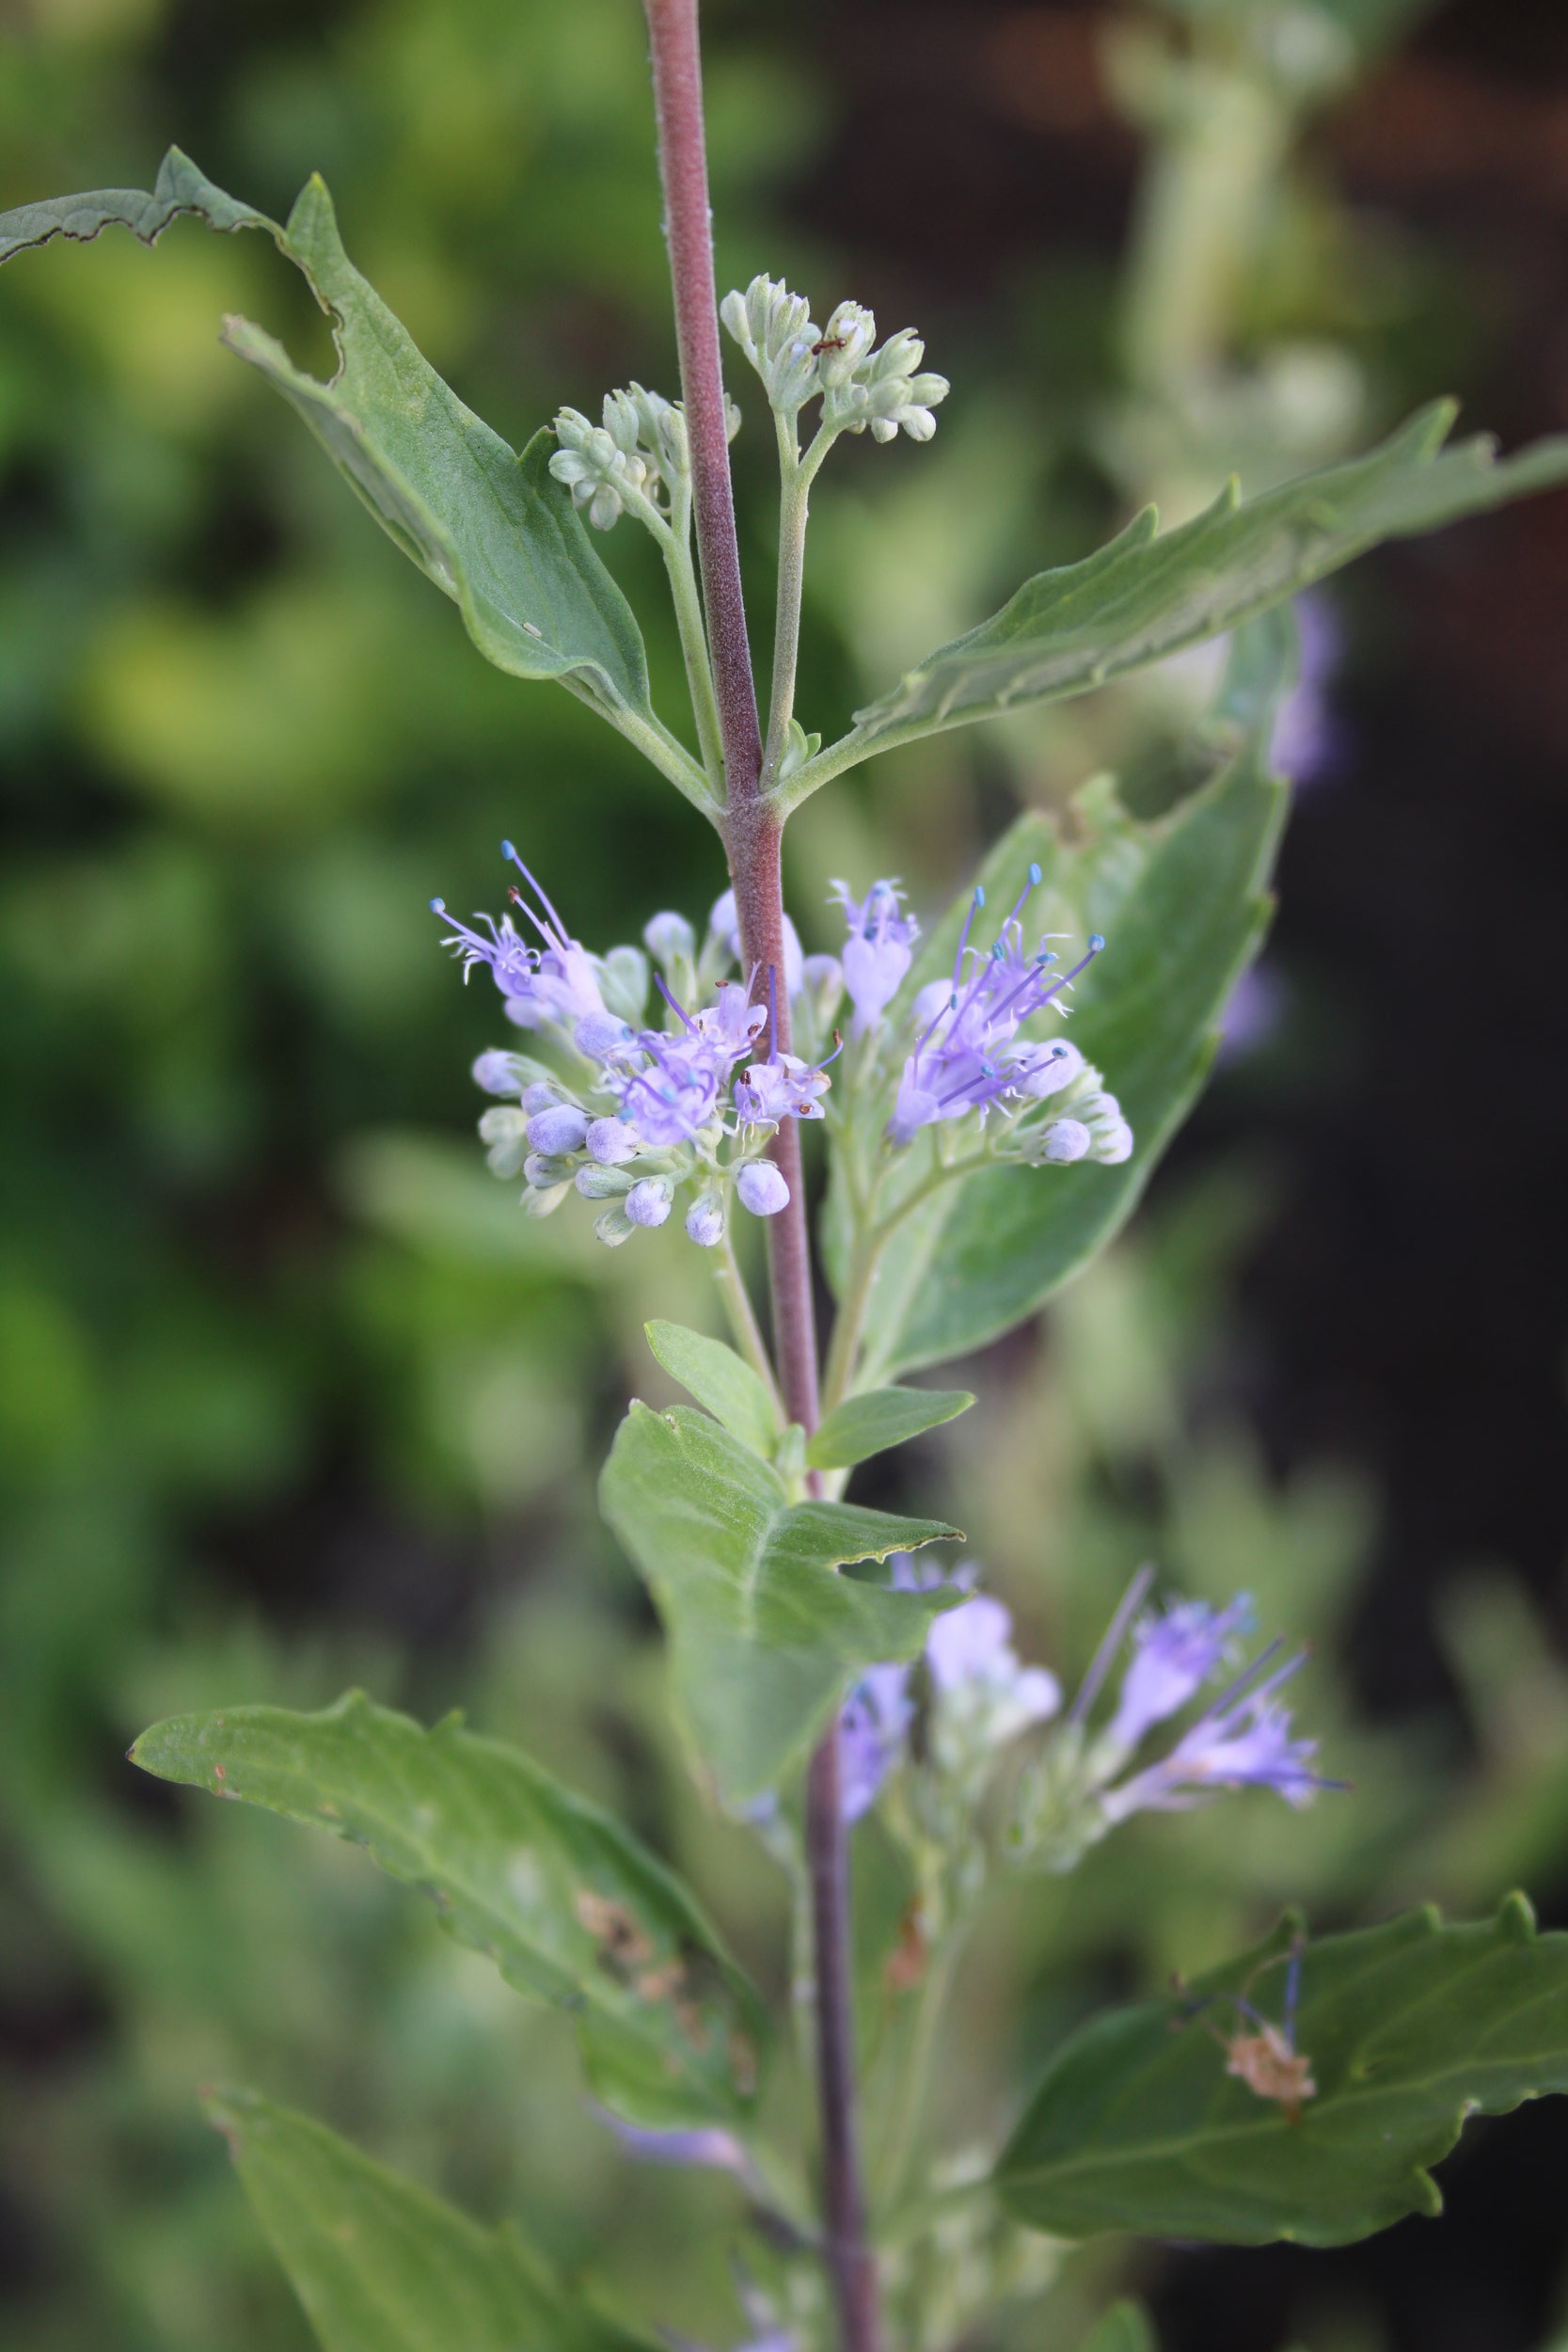 Clusters of tiny blue blooms form along the stems of Caryopteris.